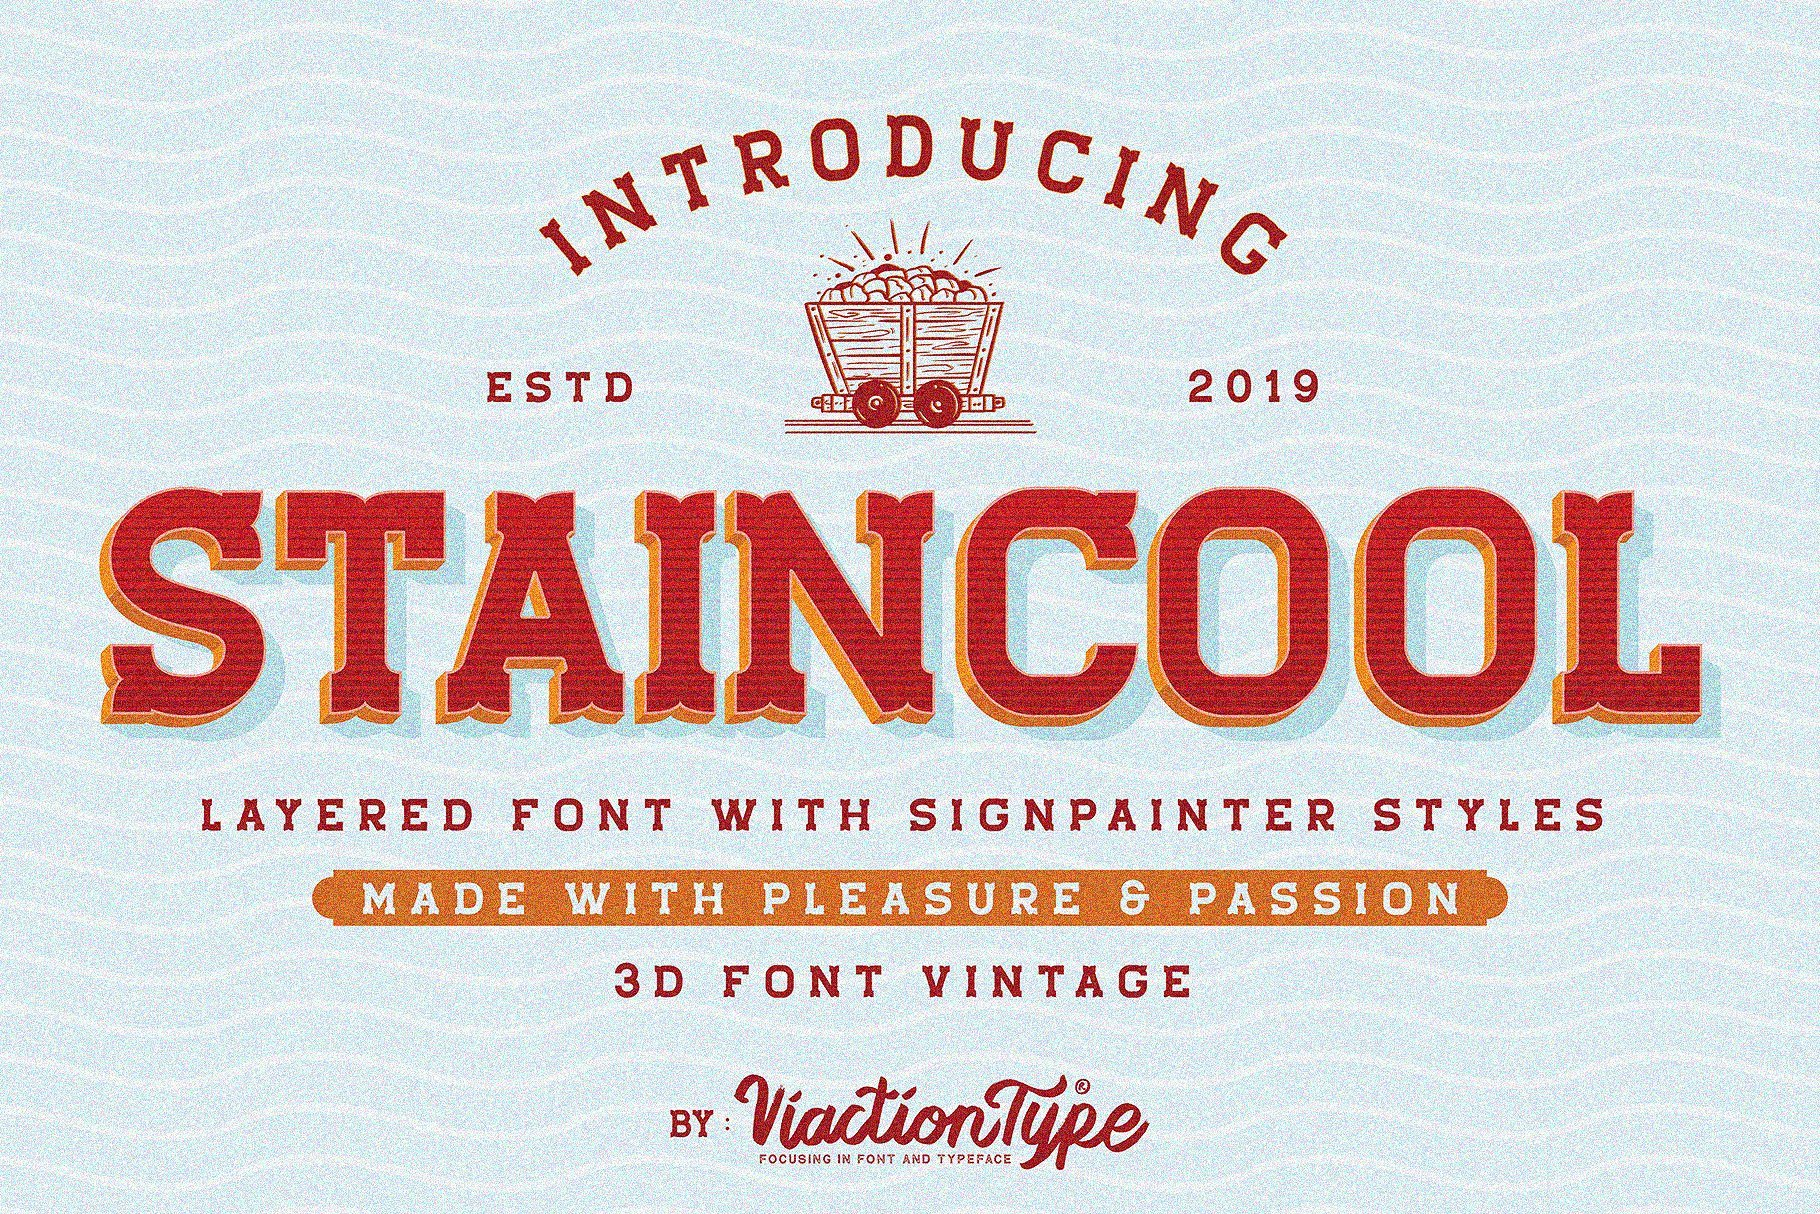 https://fontclarity.com/wp-content/uploads/2019/09/staincool-layered-font-download-0.jpg Free Download